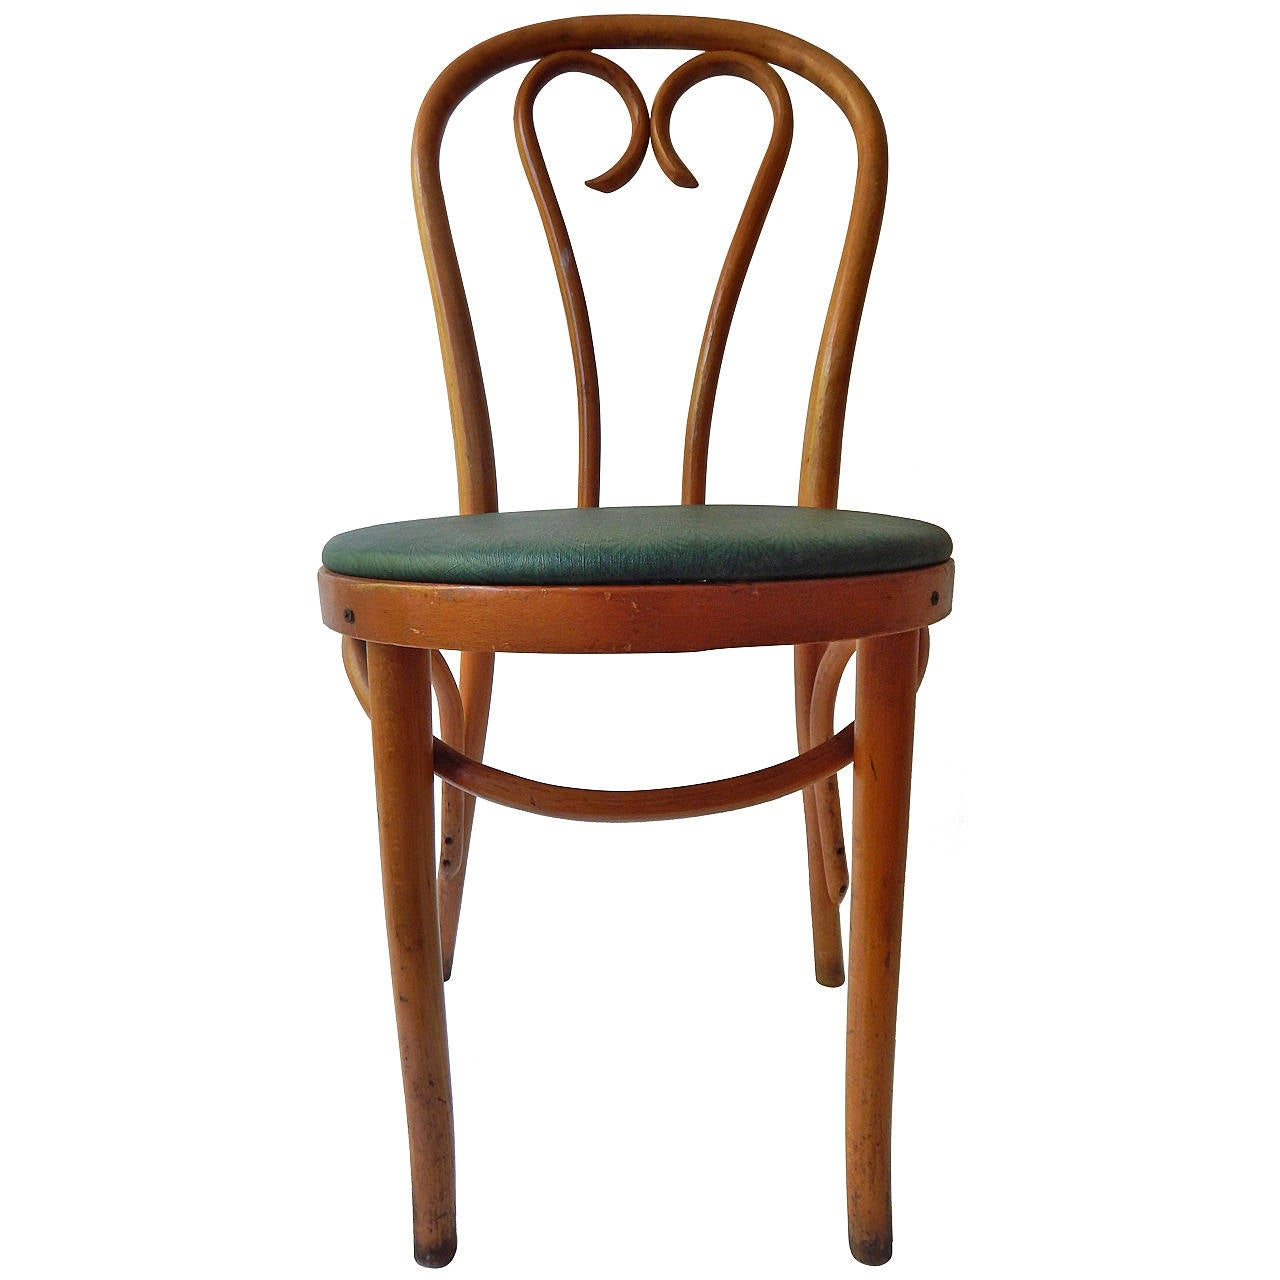 Cafe Chairs 10 Thonet Bentwood Cafe Chairs At 1stdibs